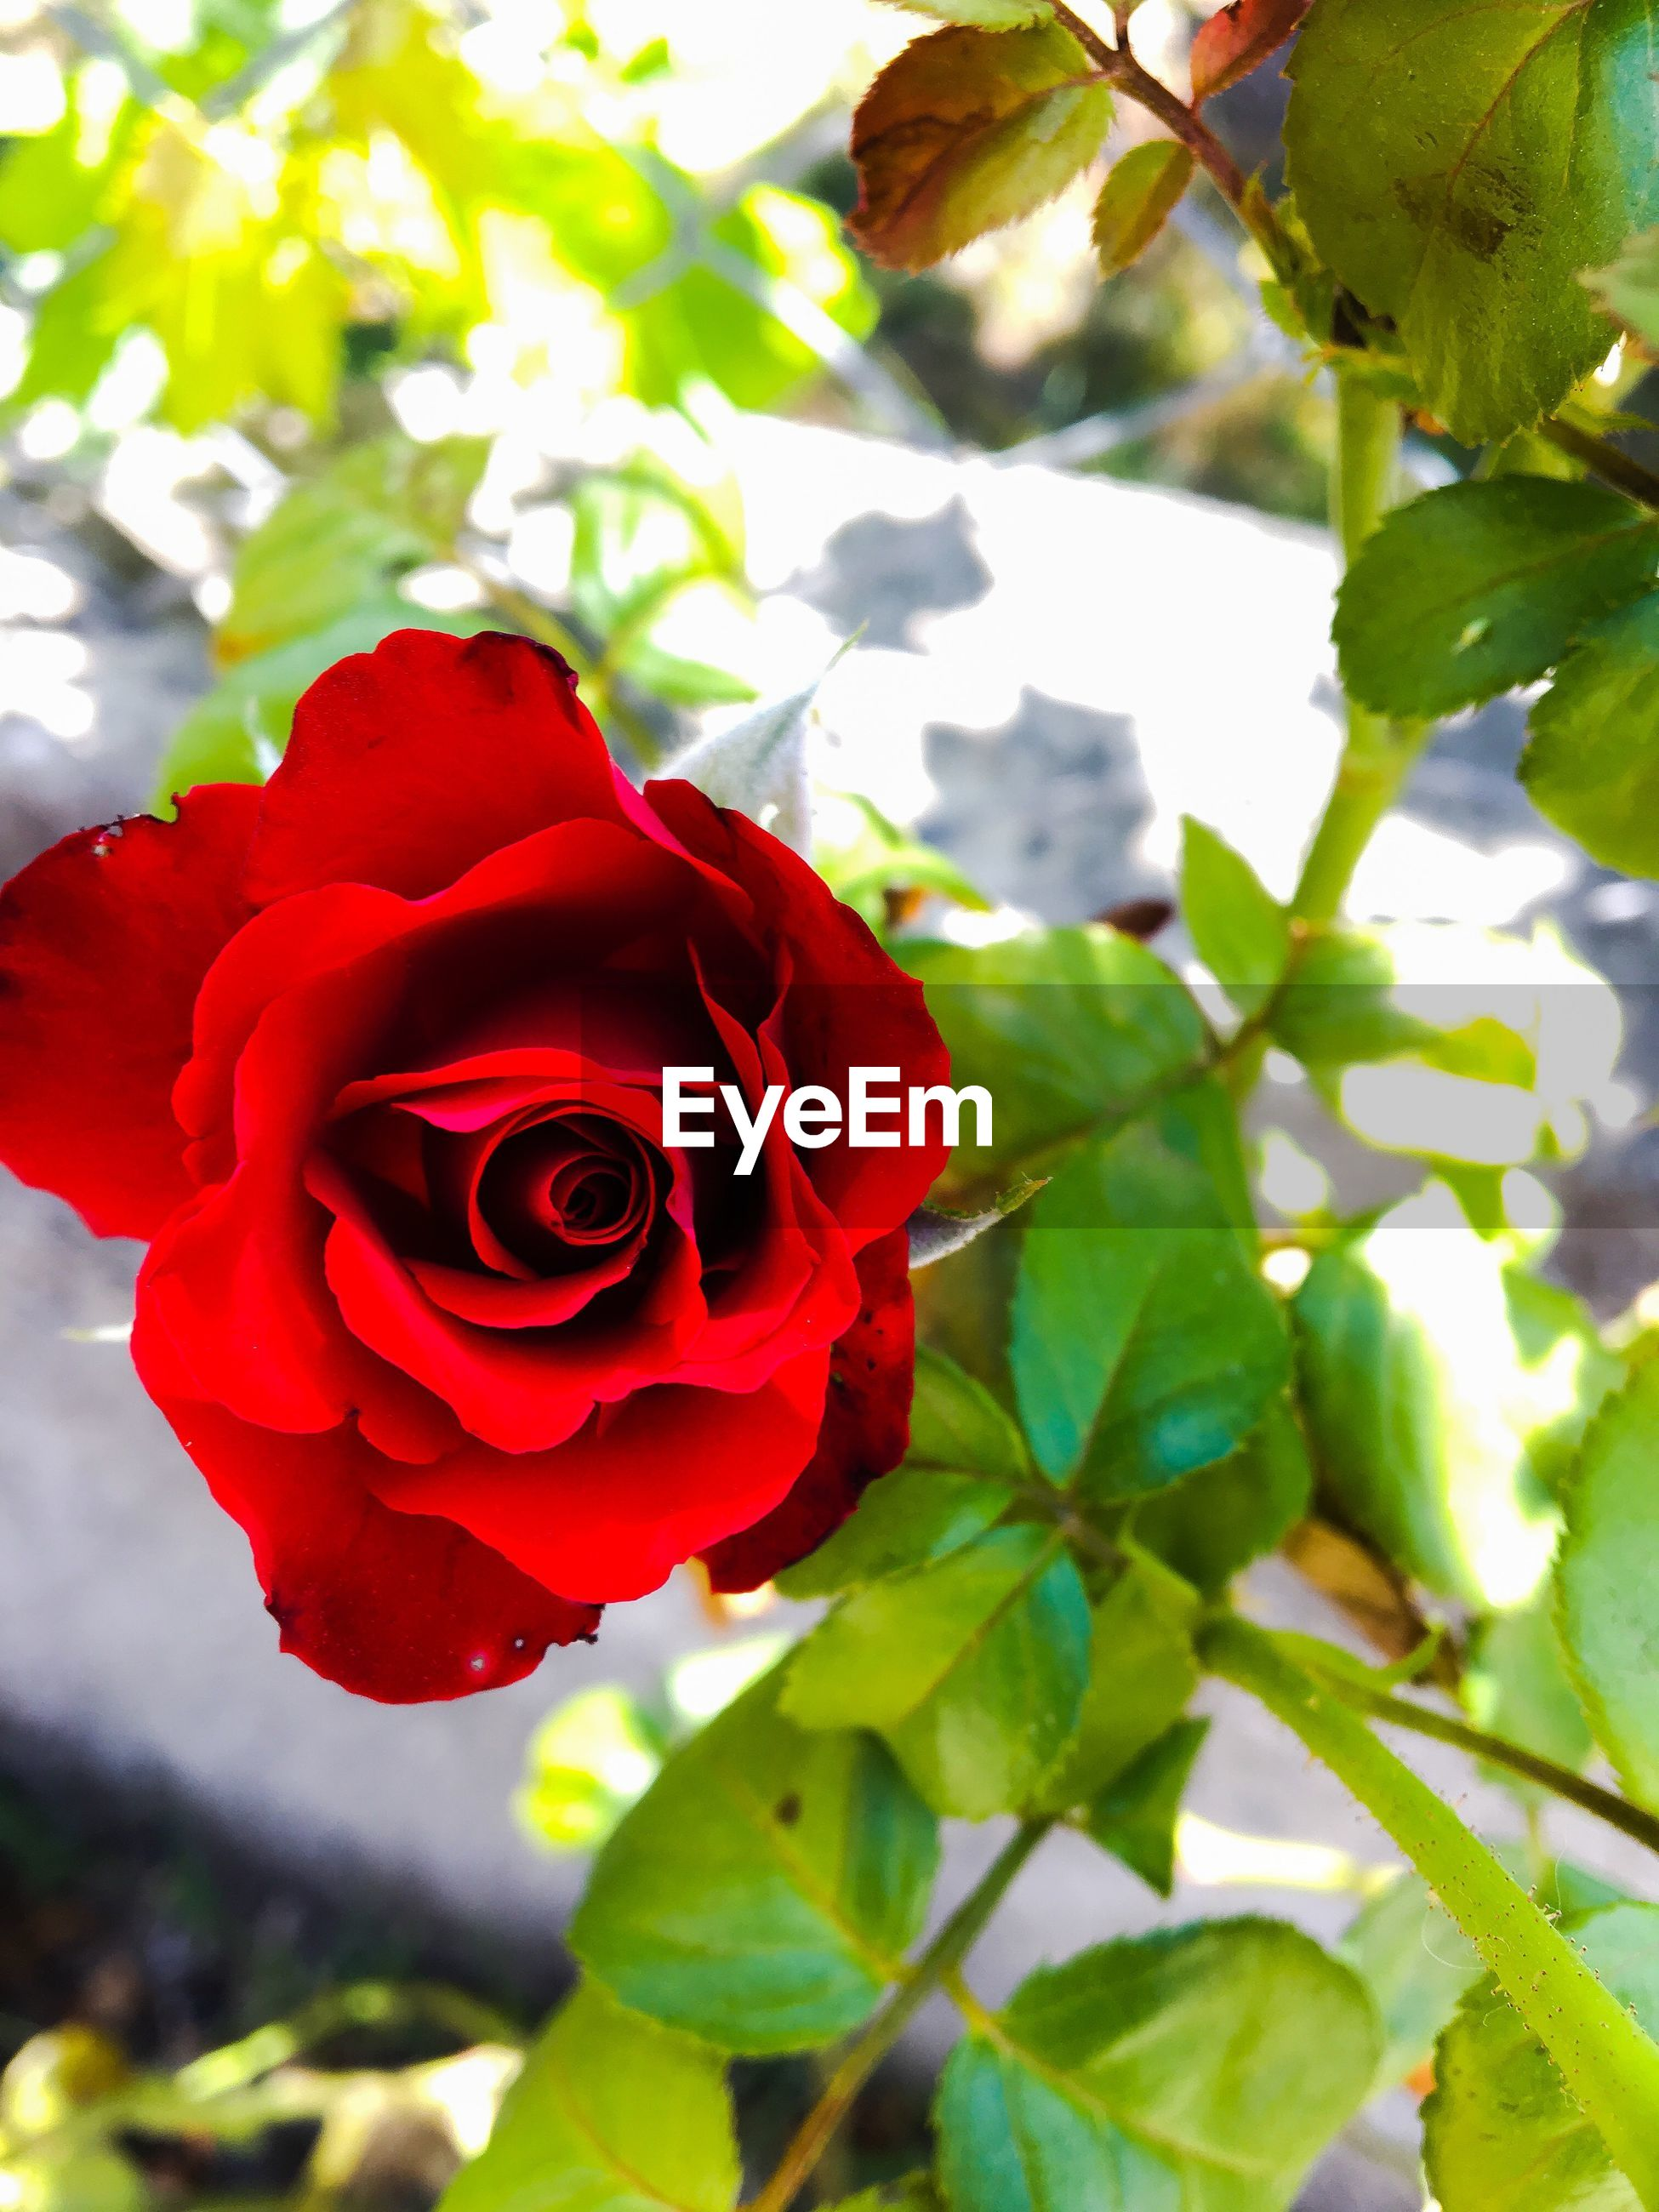 flower, rose - flower, petal, beauty in nature, fragility, growth, nature, red, freshness, plant, flower head, leaf, no people, focus on foreground, close-up, day, outdoors, blooming